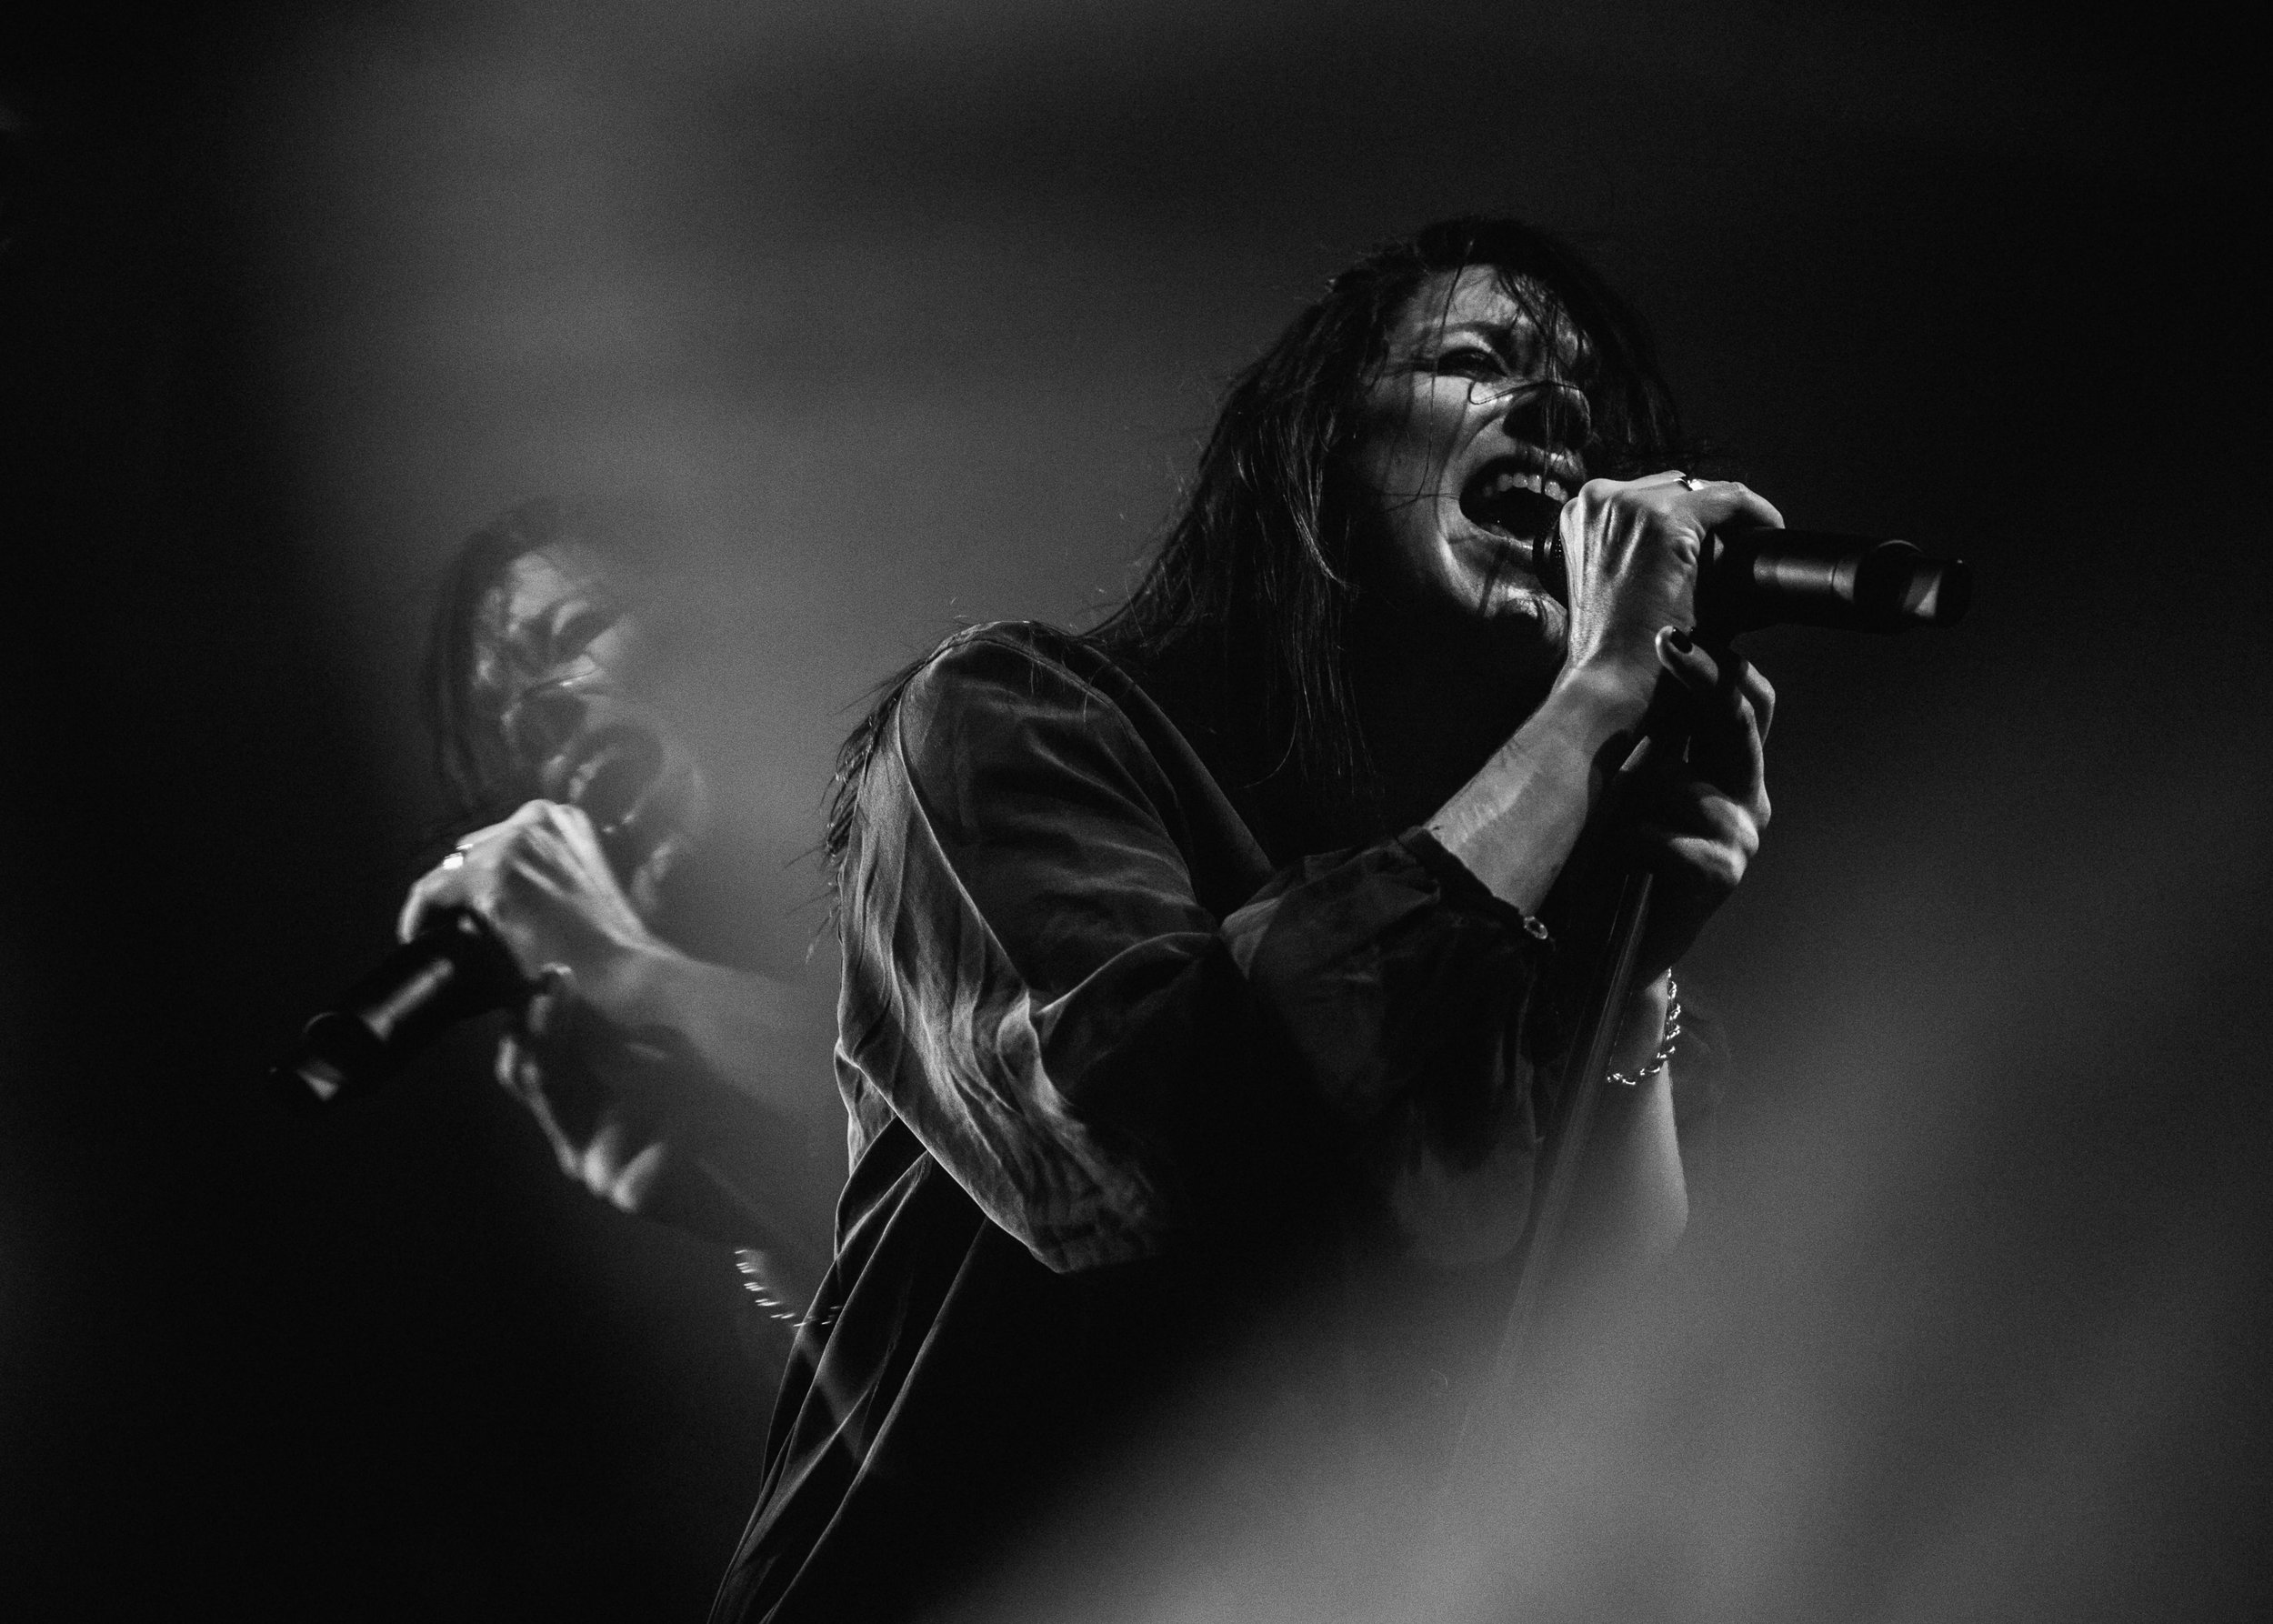 kirby-gladstein-photography-kflay-concert-fonda-theatre-los-angeles-2018-9